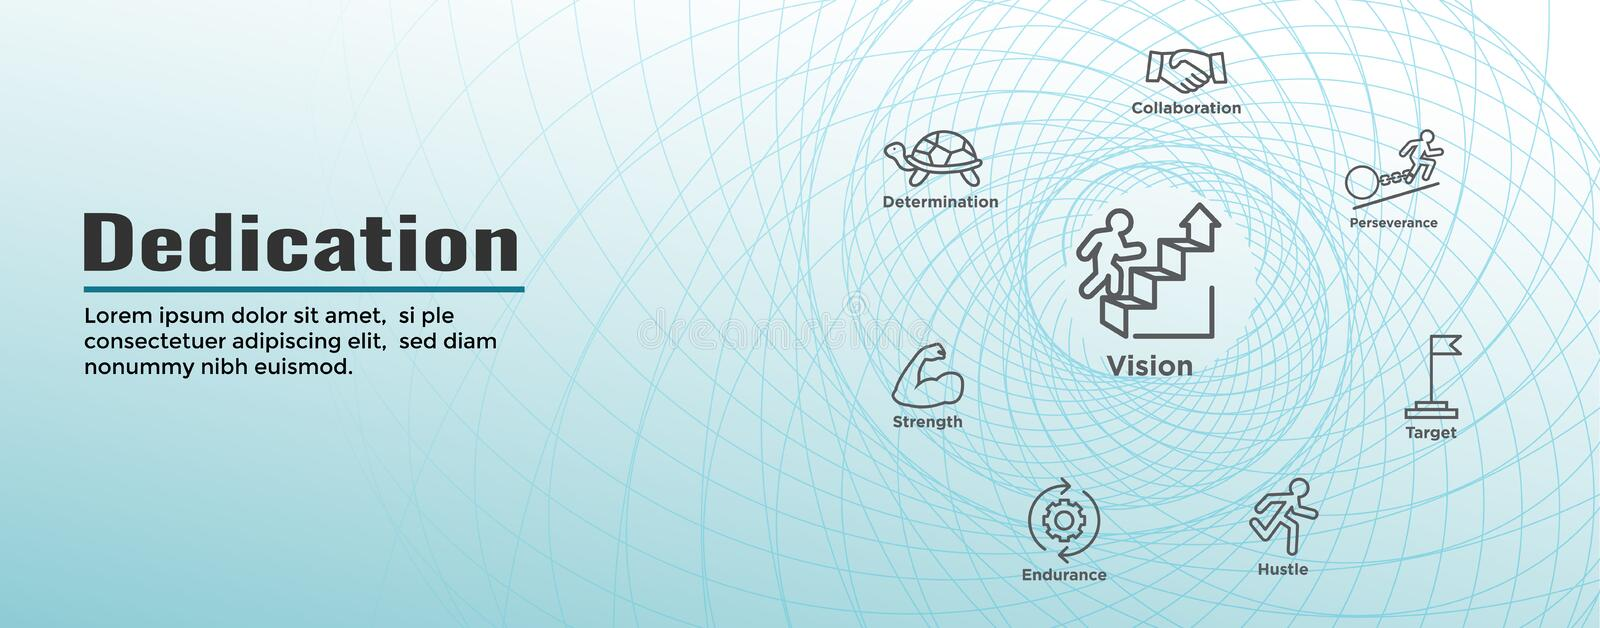 Dedication, Vision and Values Web Header Banner with Connection, Growth, Focus, and Quality vector illustration